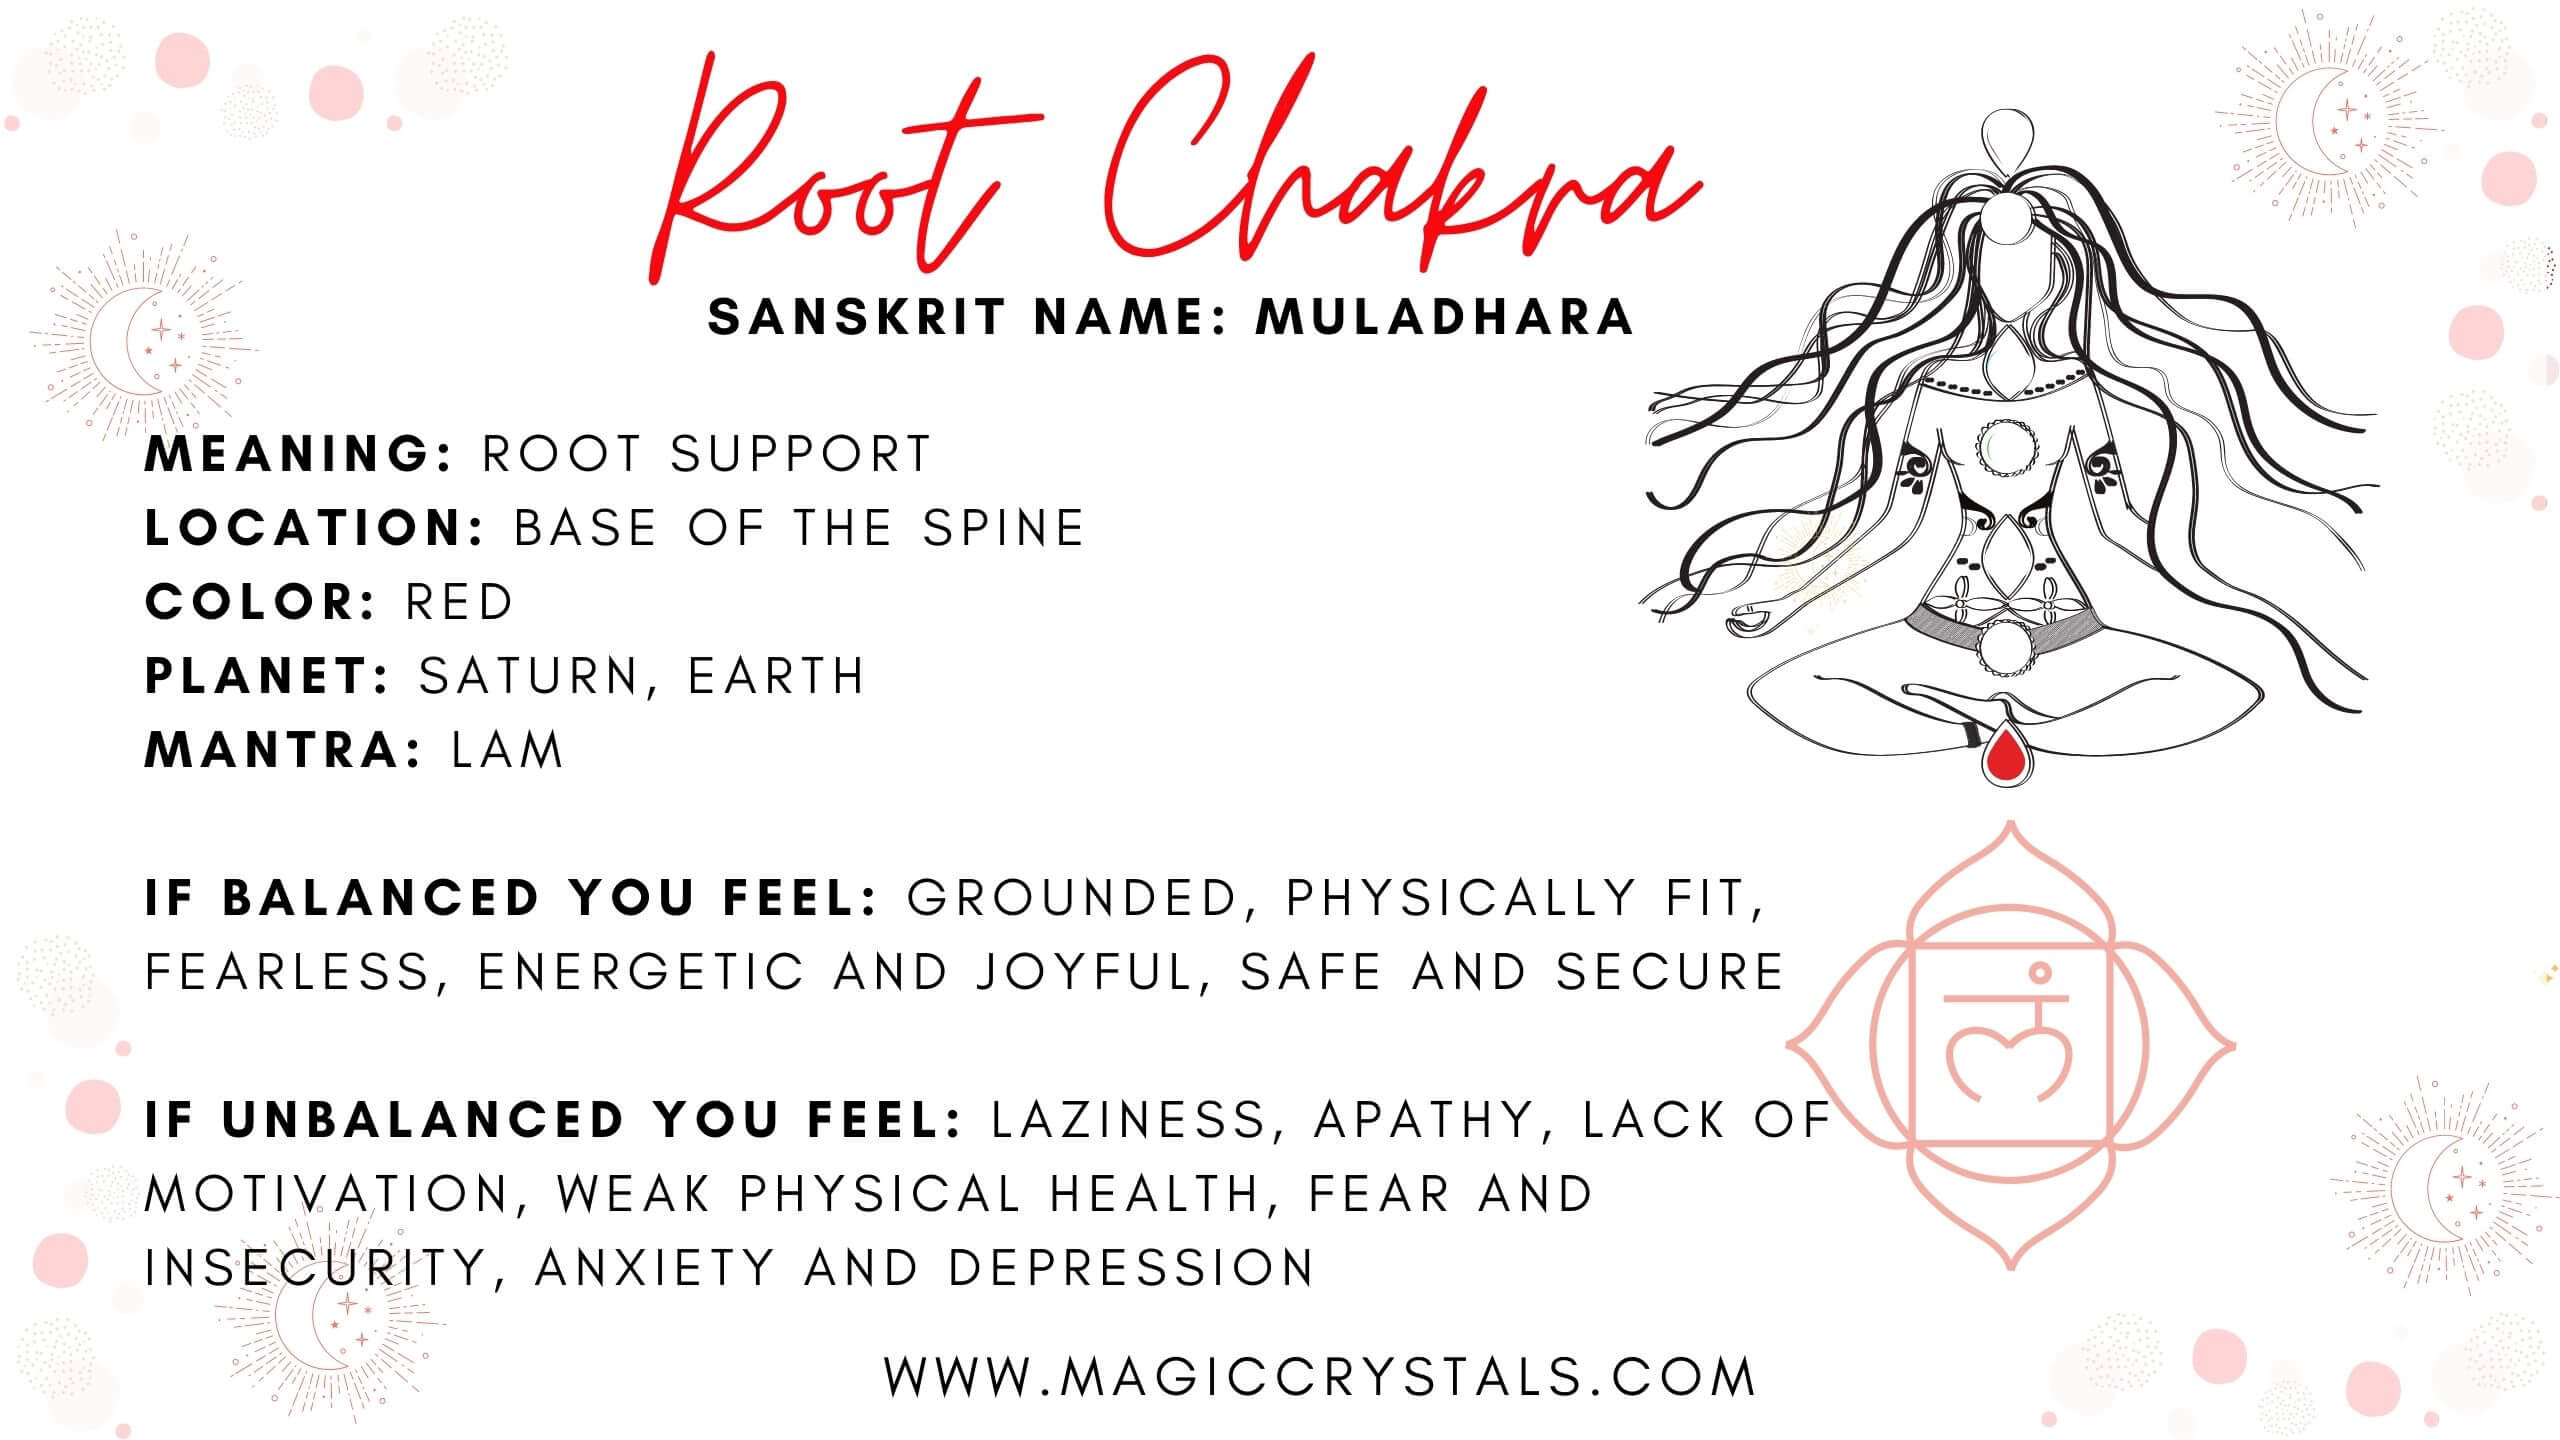 Root Chakra Meaning - Everything about the root chakra - Root Chakra Facts - Learn all about root chakra - Crystal Healing the root chakra - Magic Crystals